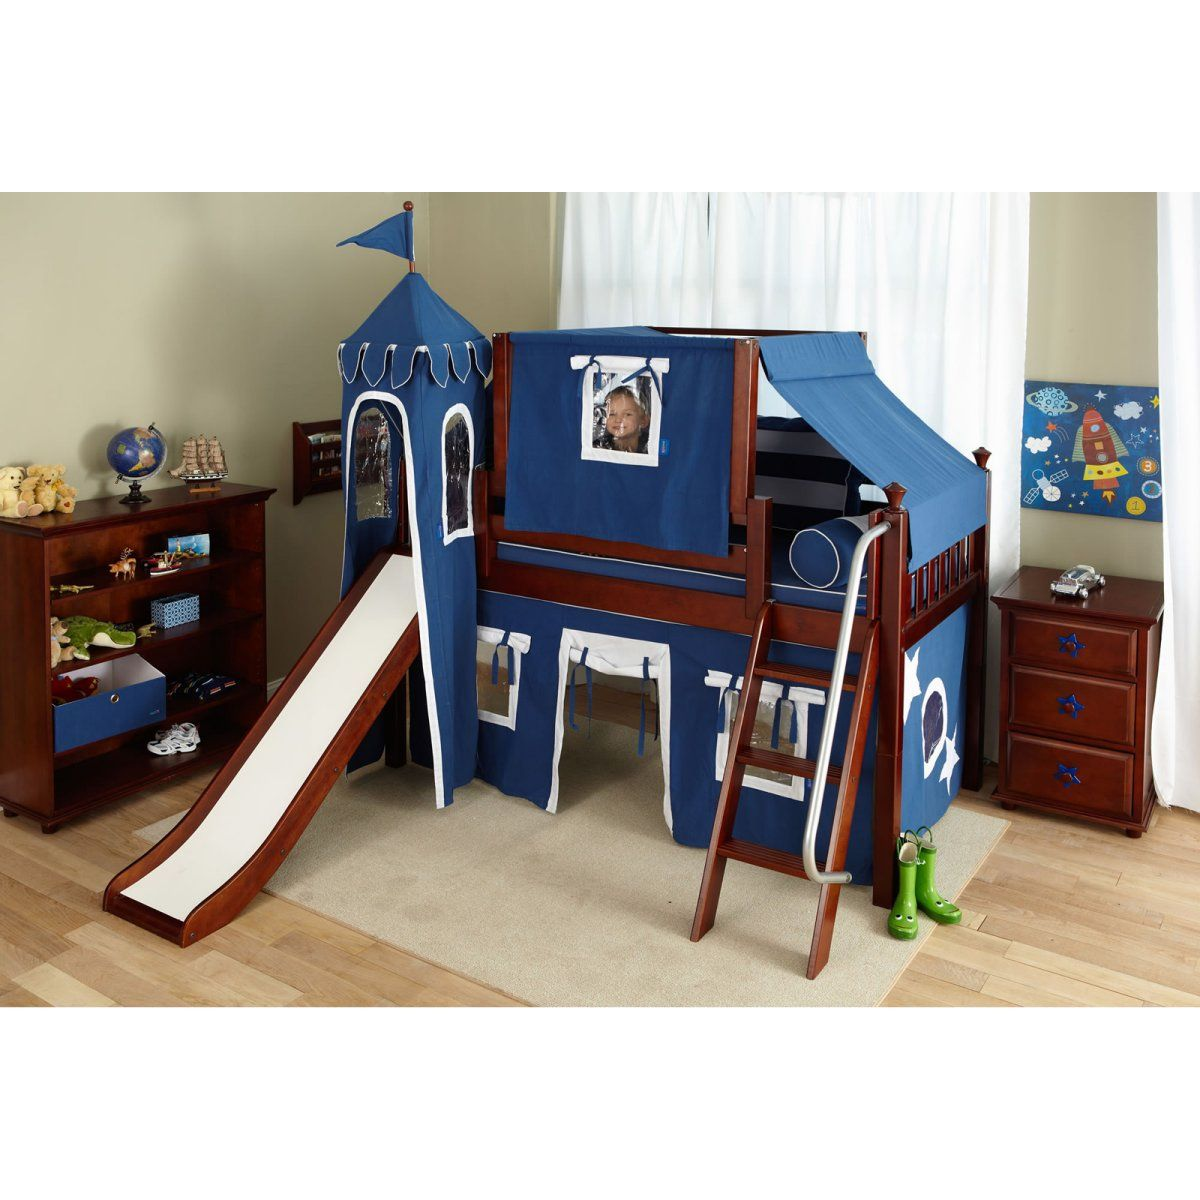 Wow Boy I Deluxe Panel Low Loft Tent Bed with Slide